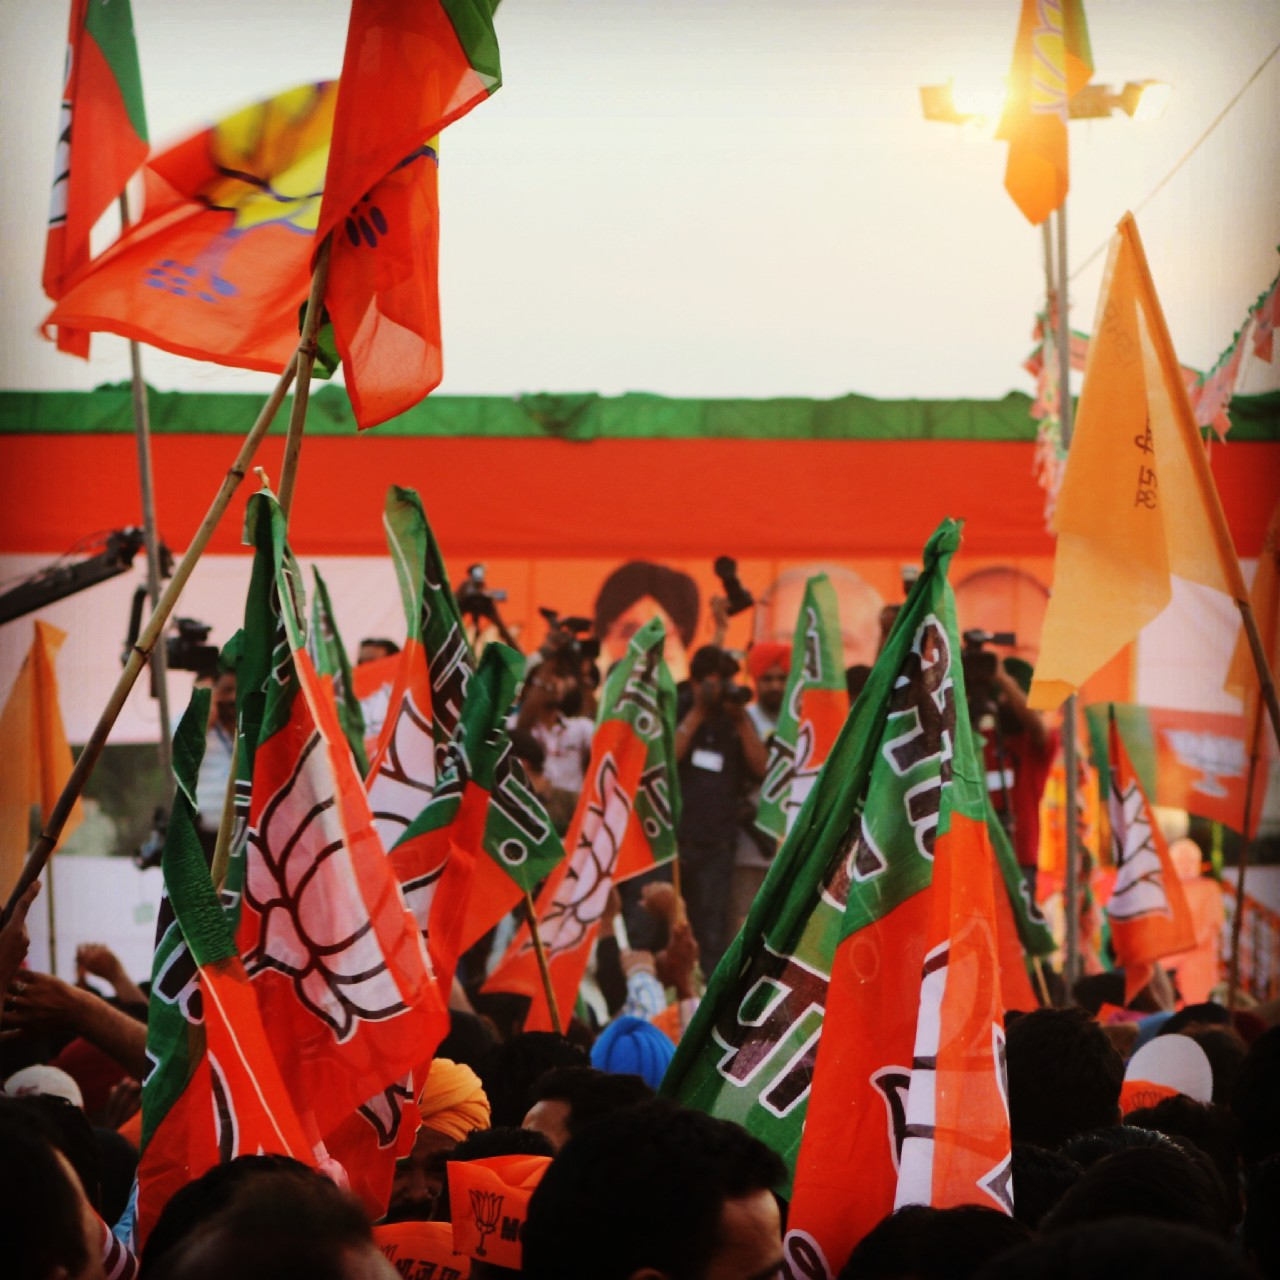 Congress is stagnant on the resignation of BJP's Union Minister